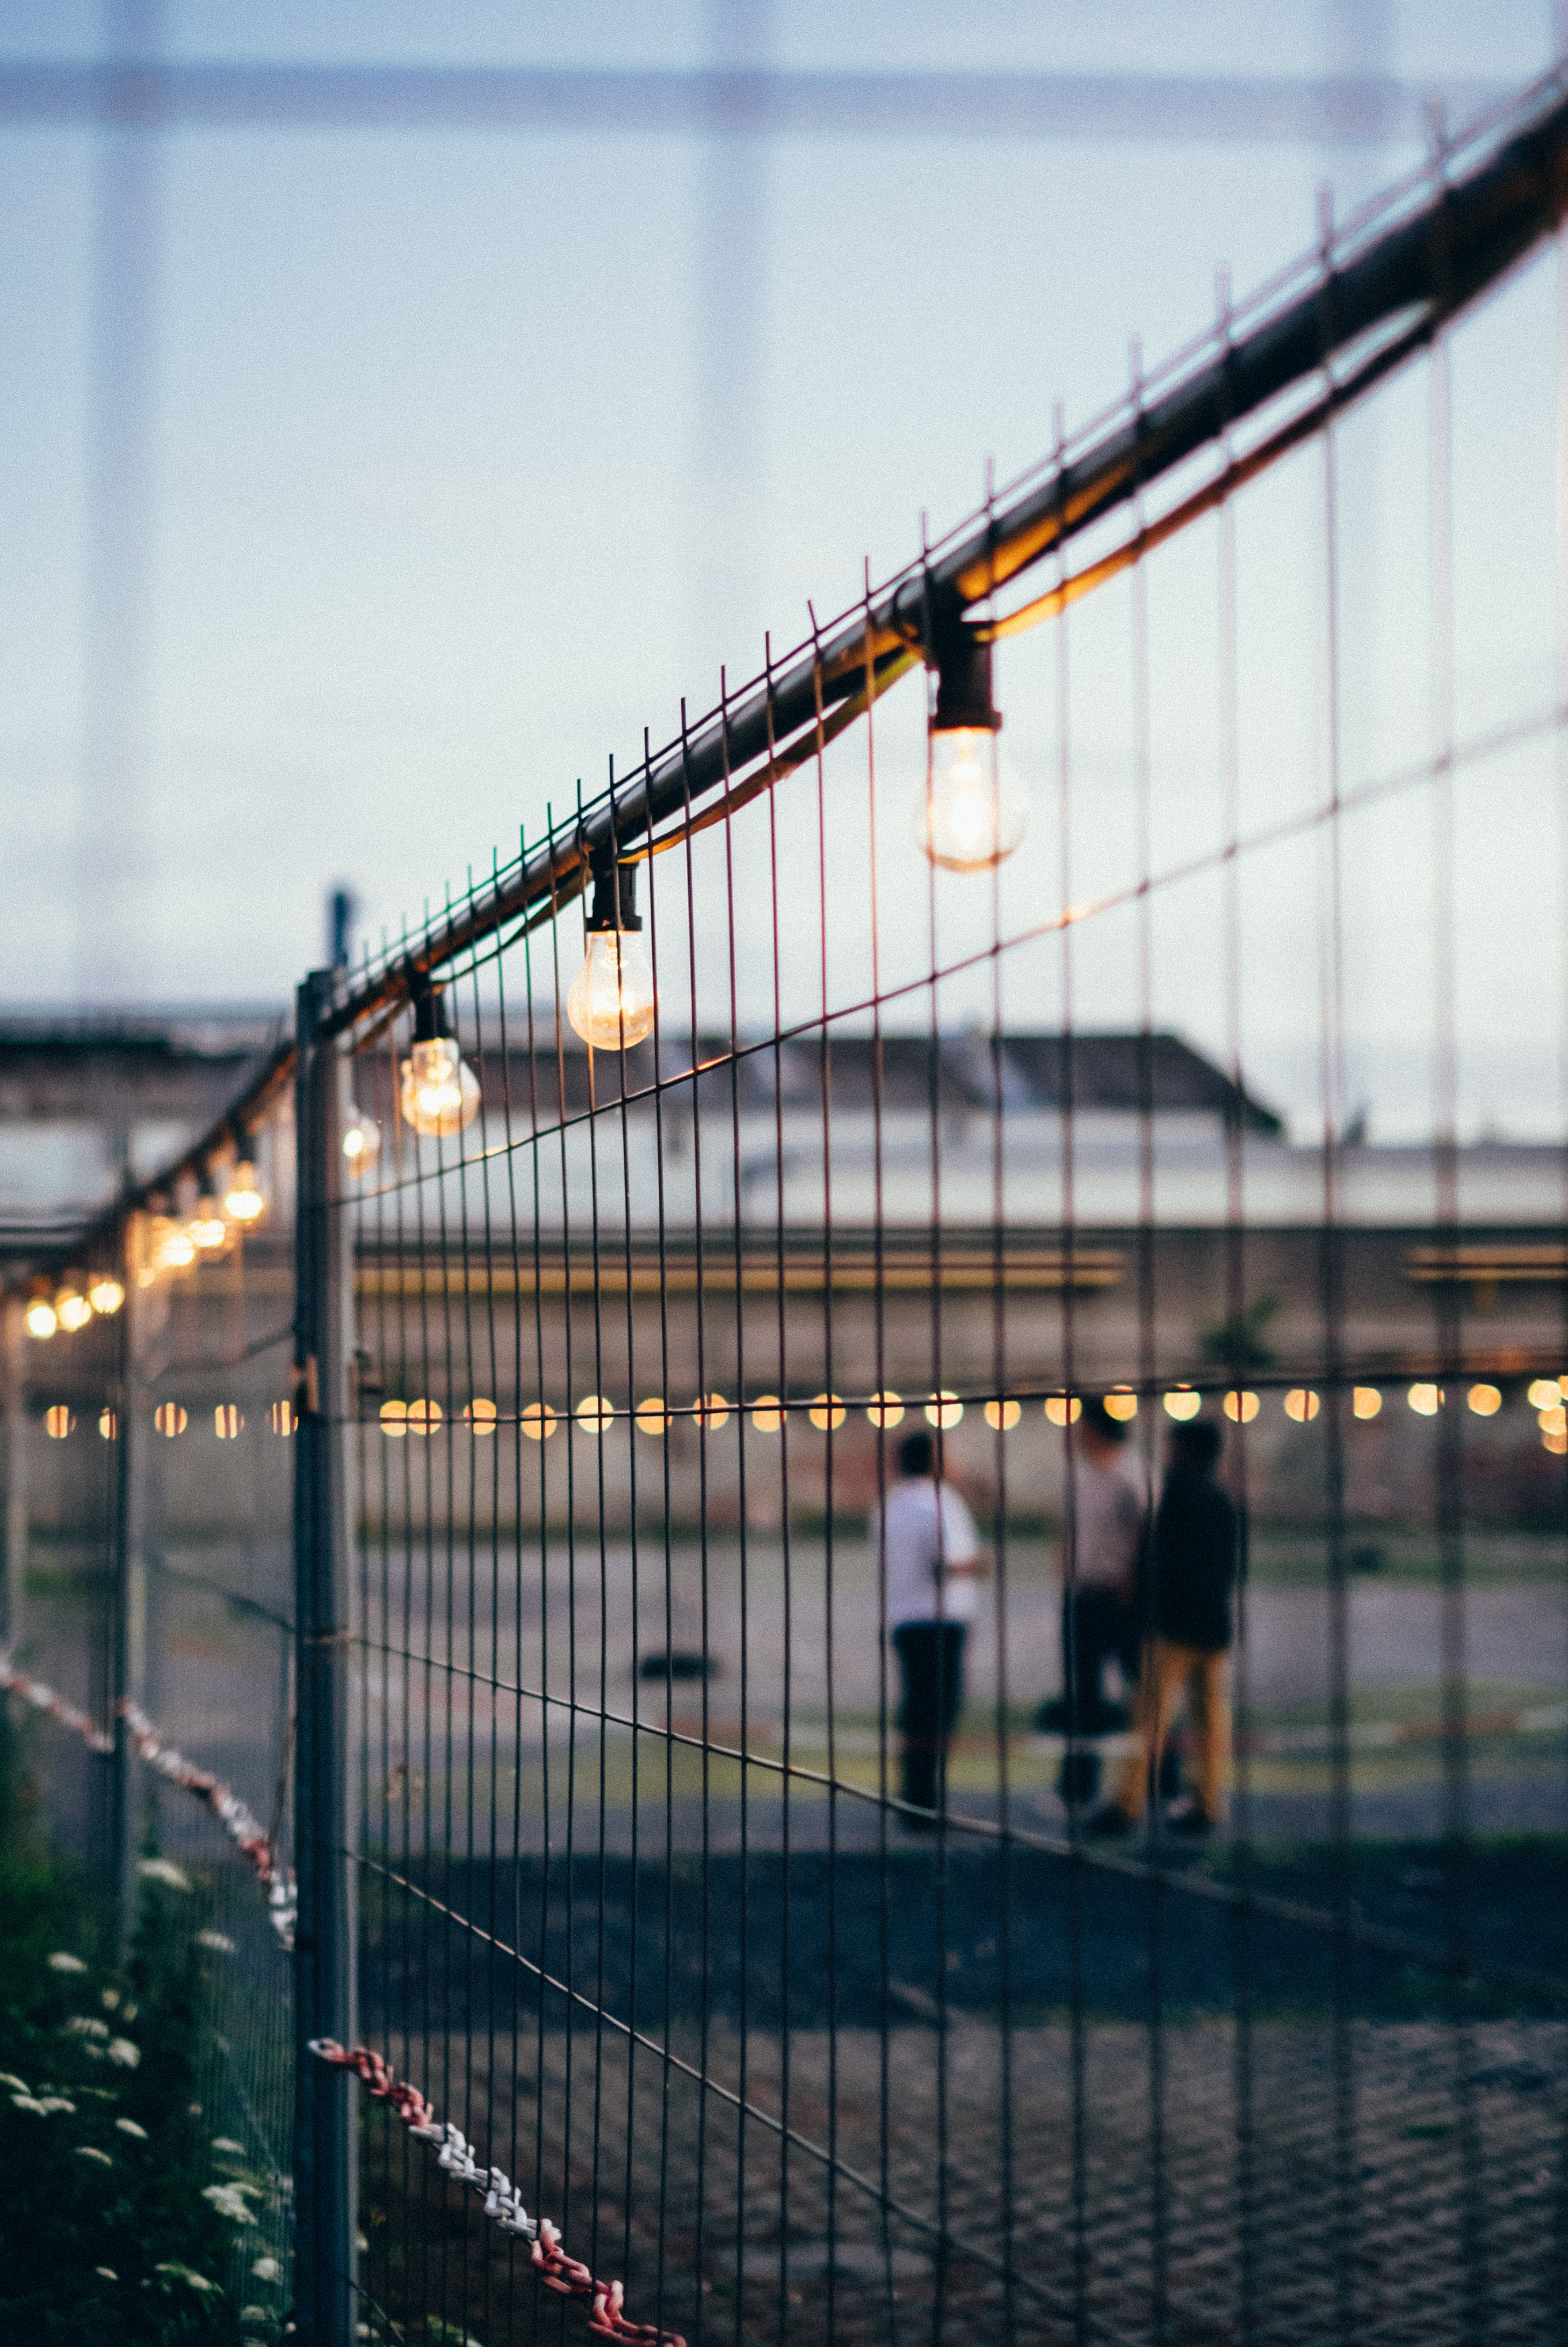 minimalist photography of gate with light bulbs string